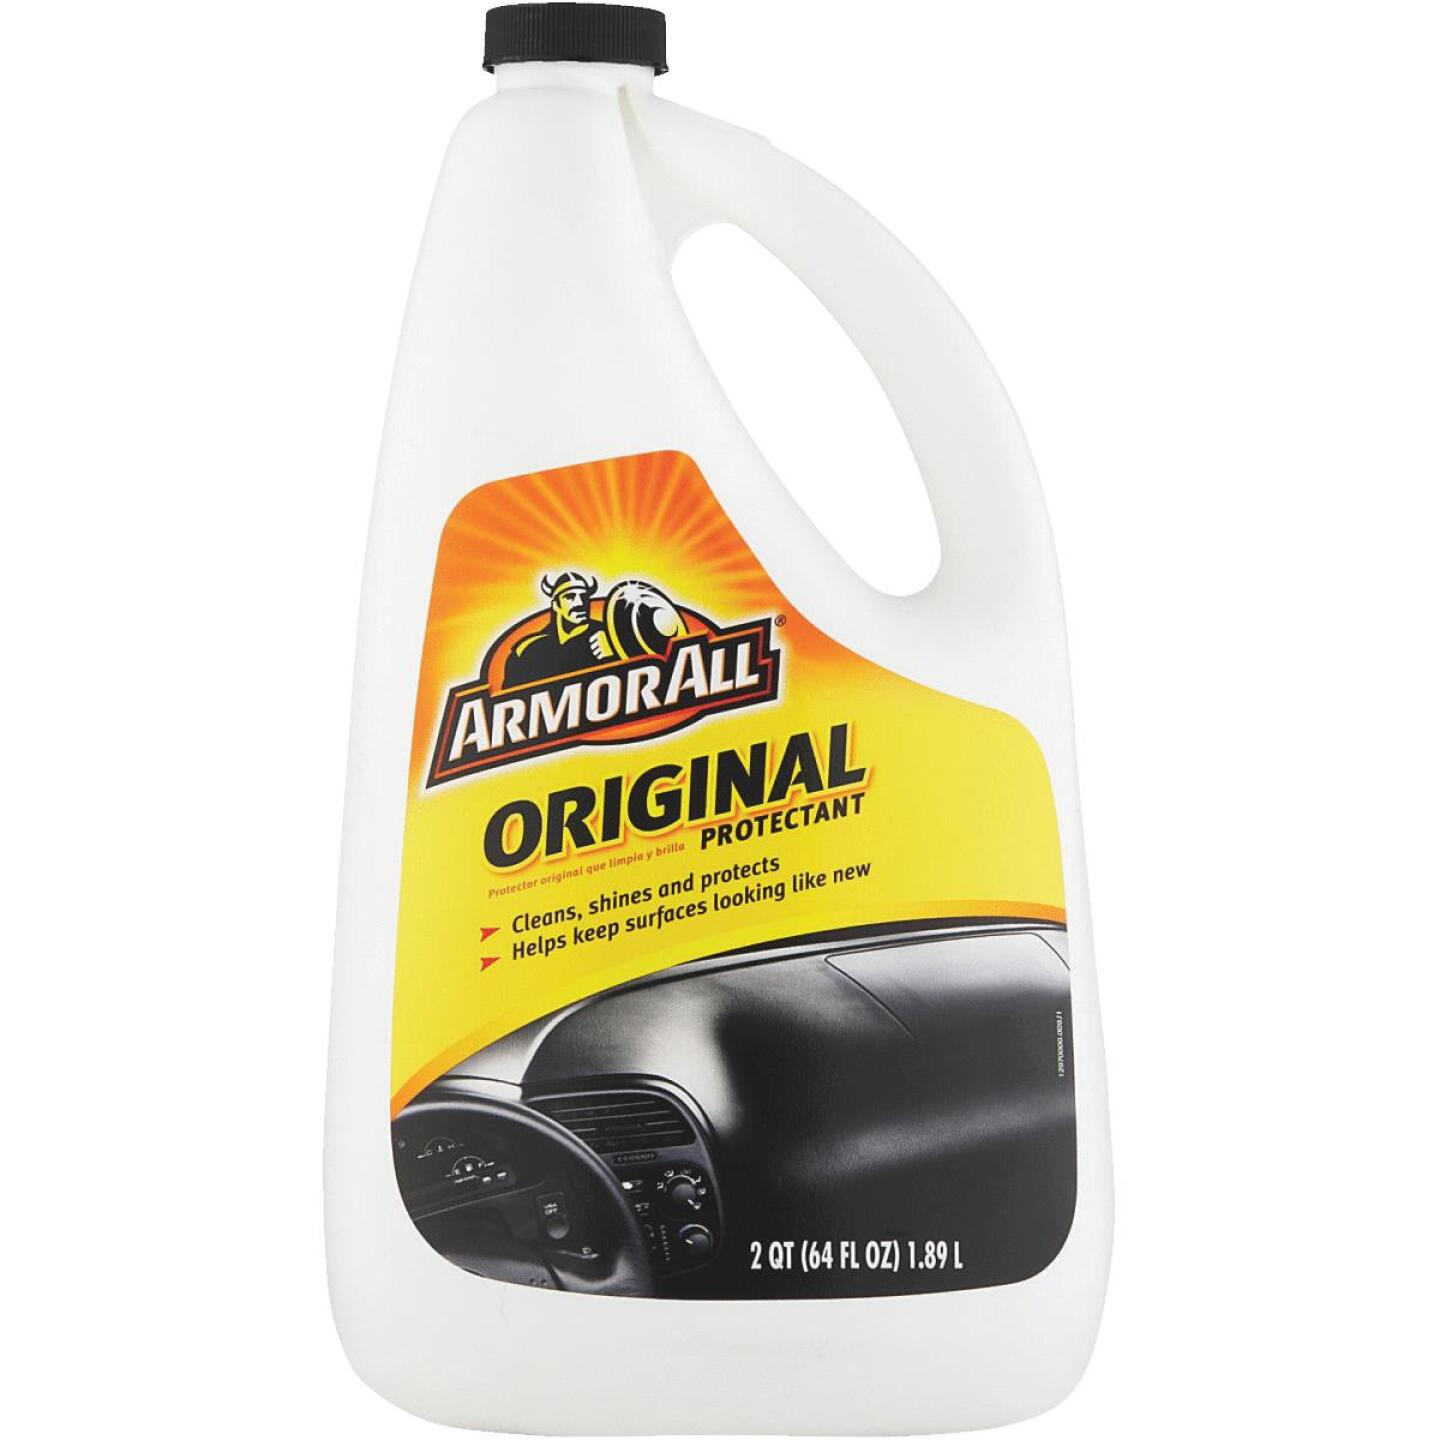 Armor All 64 Oz. Liquid Original Protectant Refill Image 1